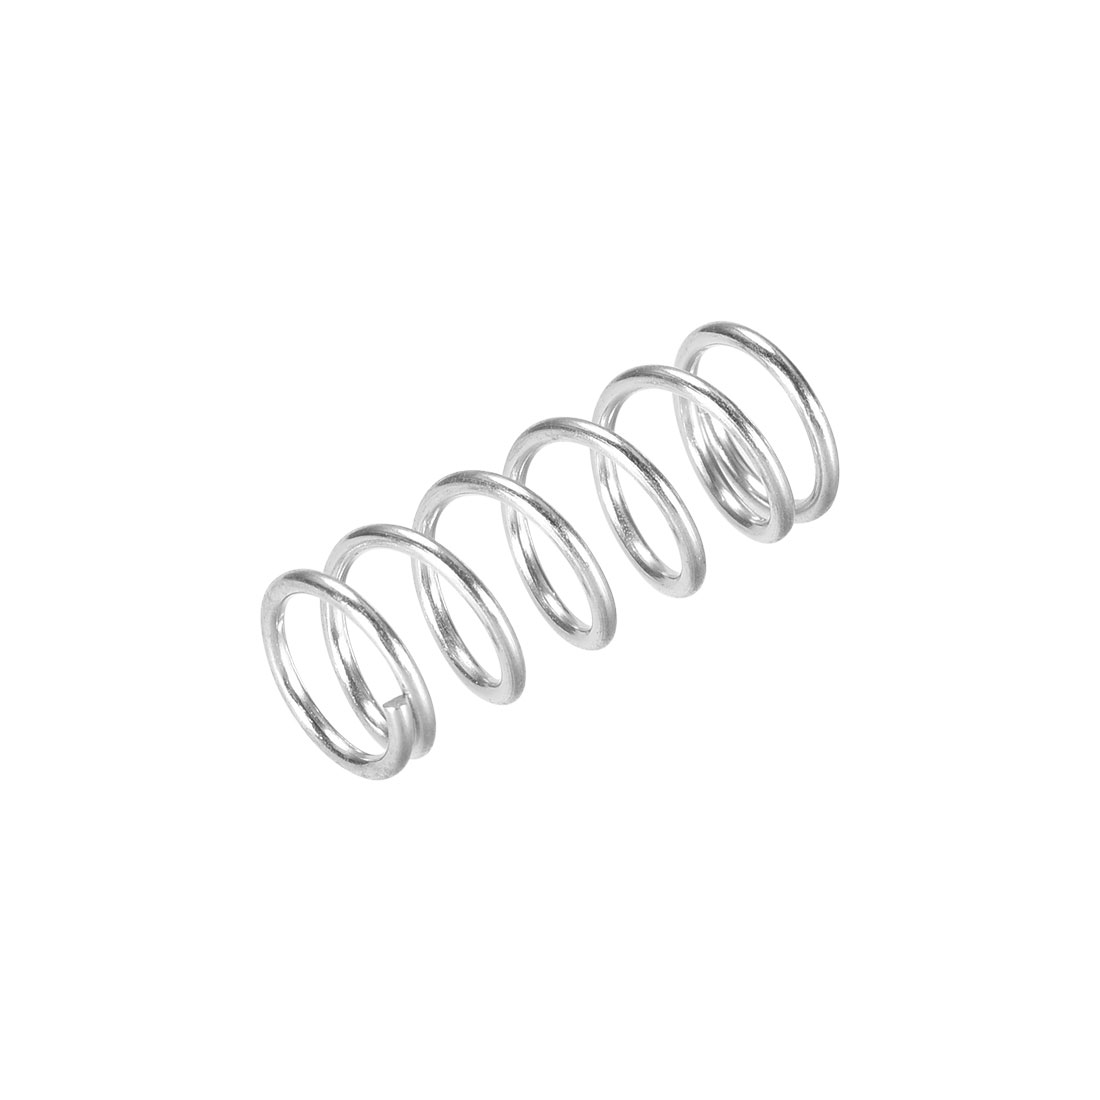 Heated Bed Springs for 3D Printer Extruder Compression Spring, 9 x 22 mm 10pcs